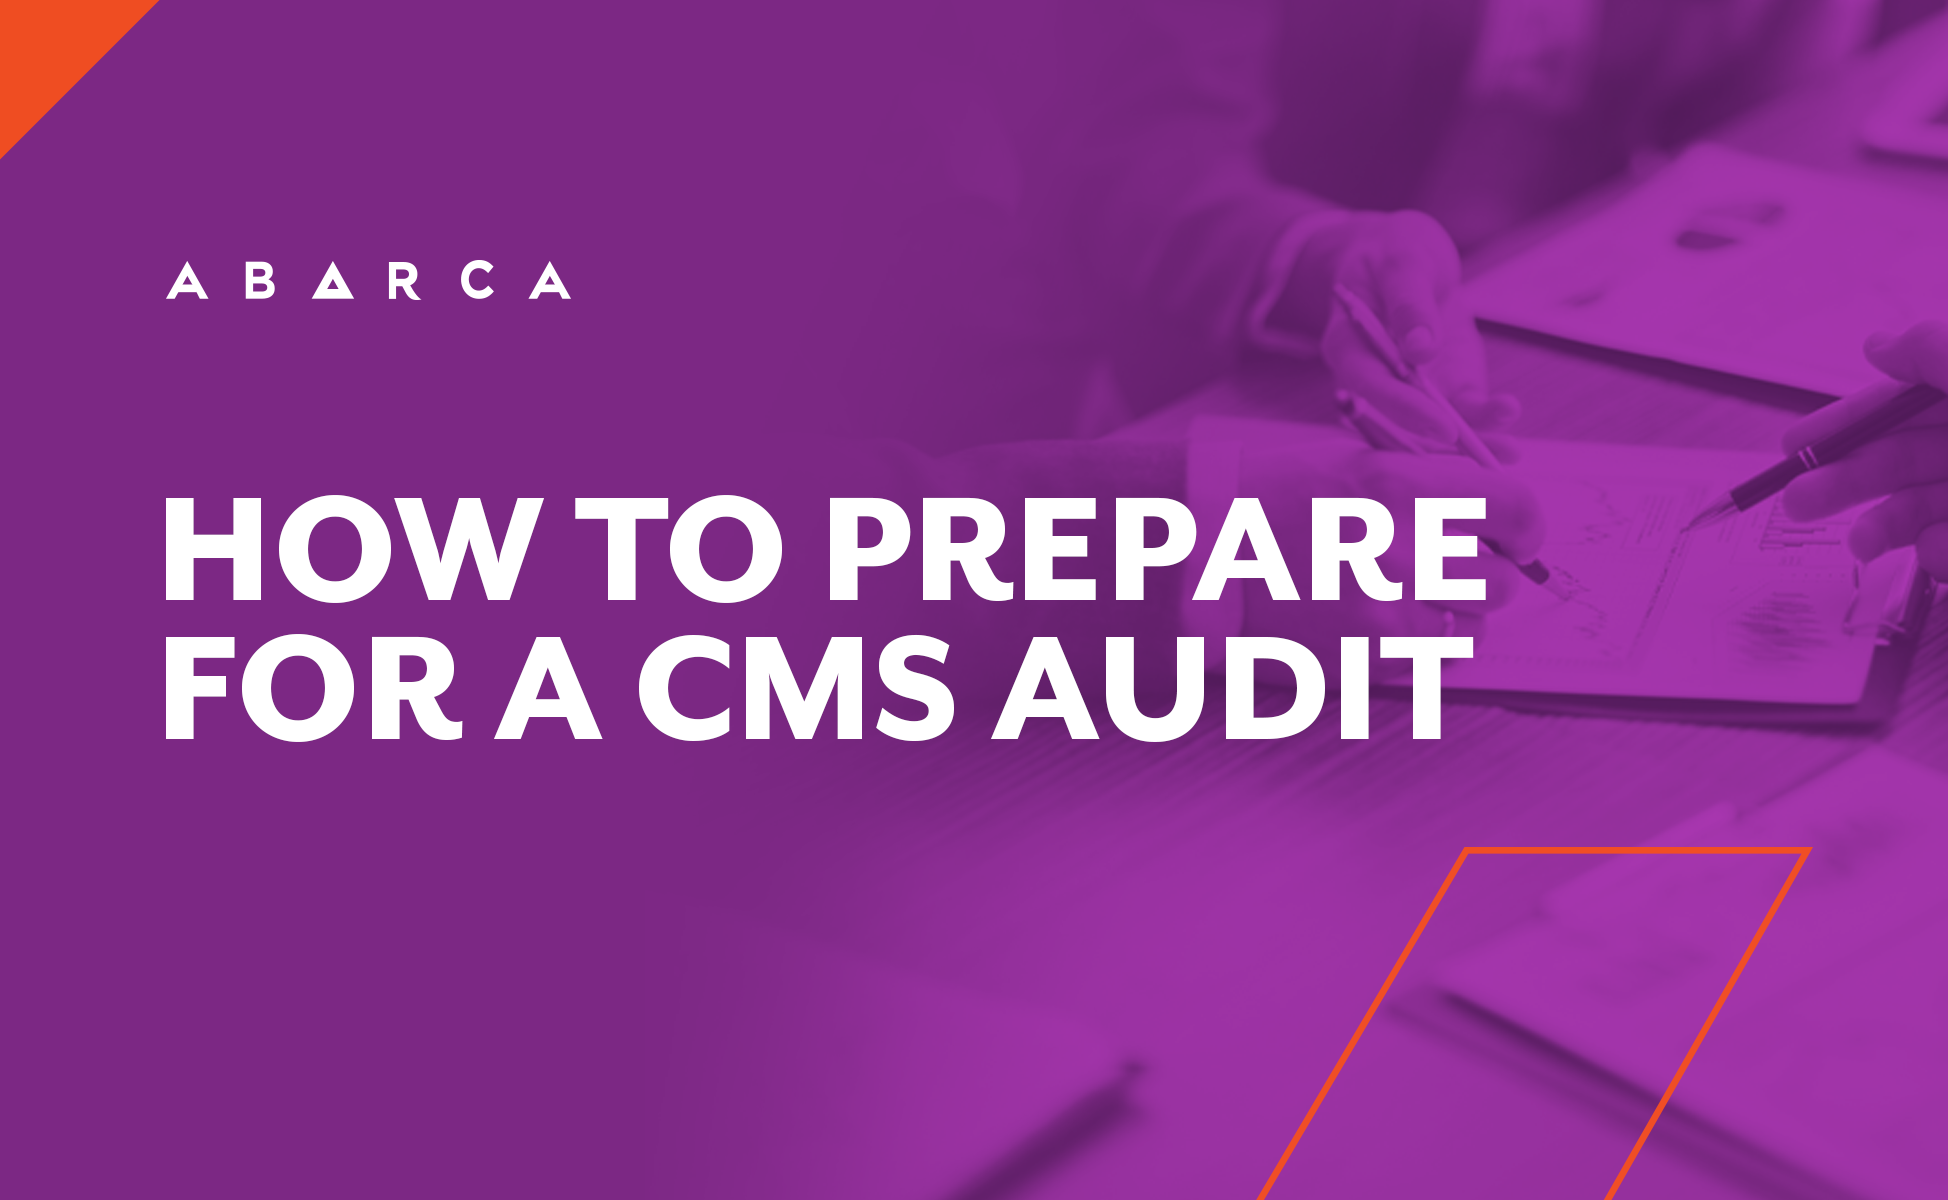 Abarca Health: How health plans can prepare for a CMS audit